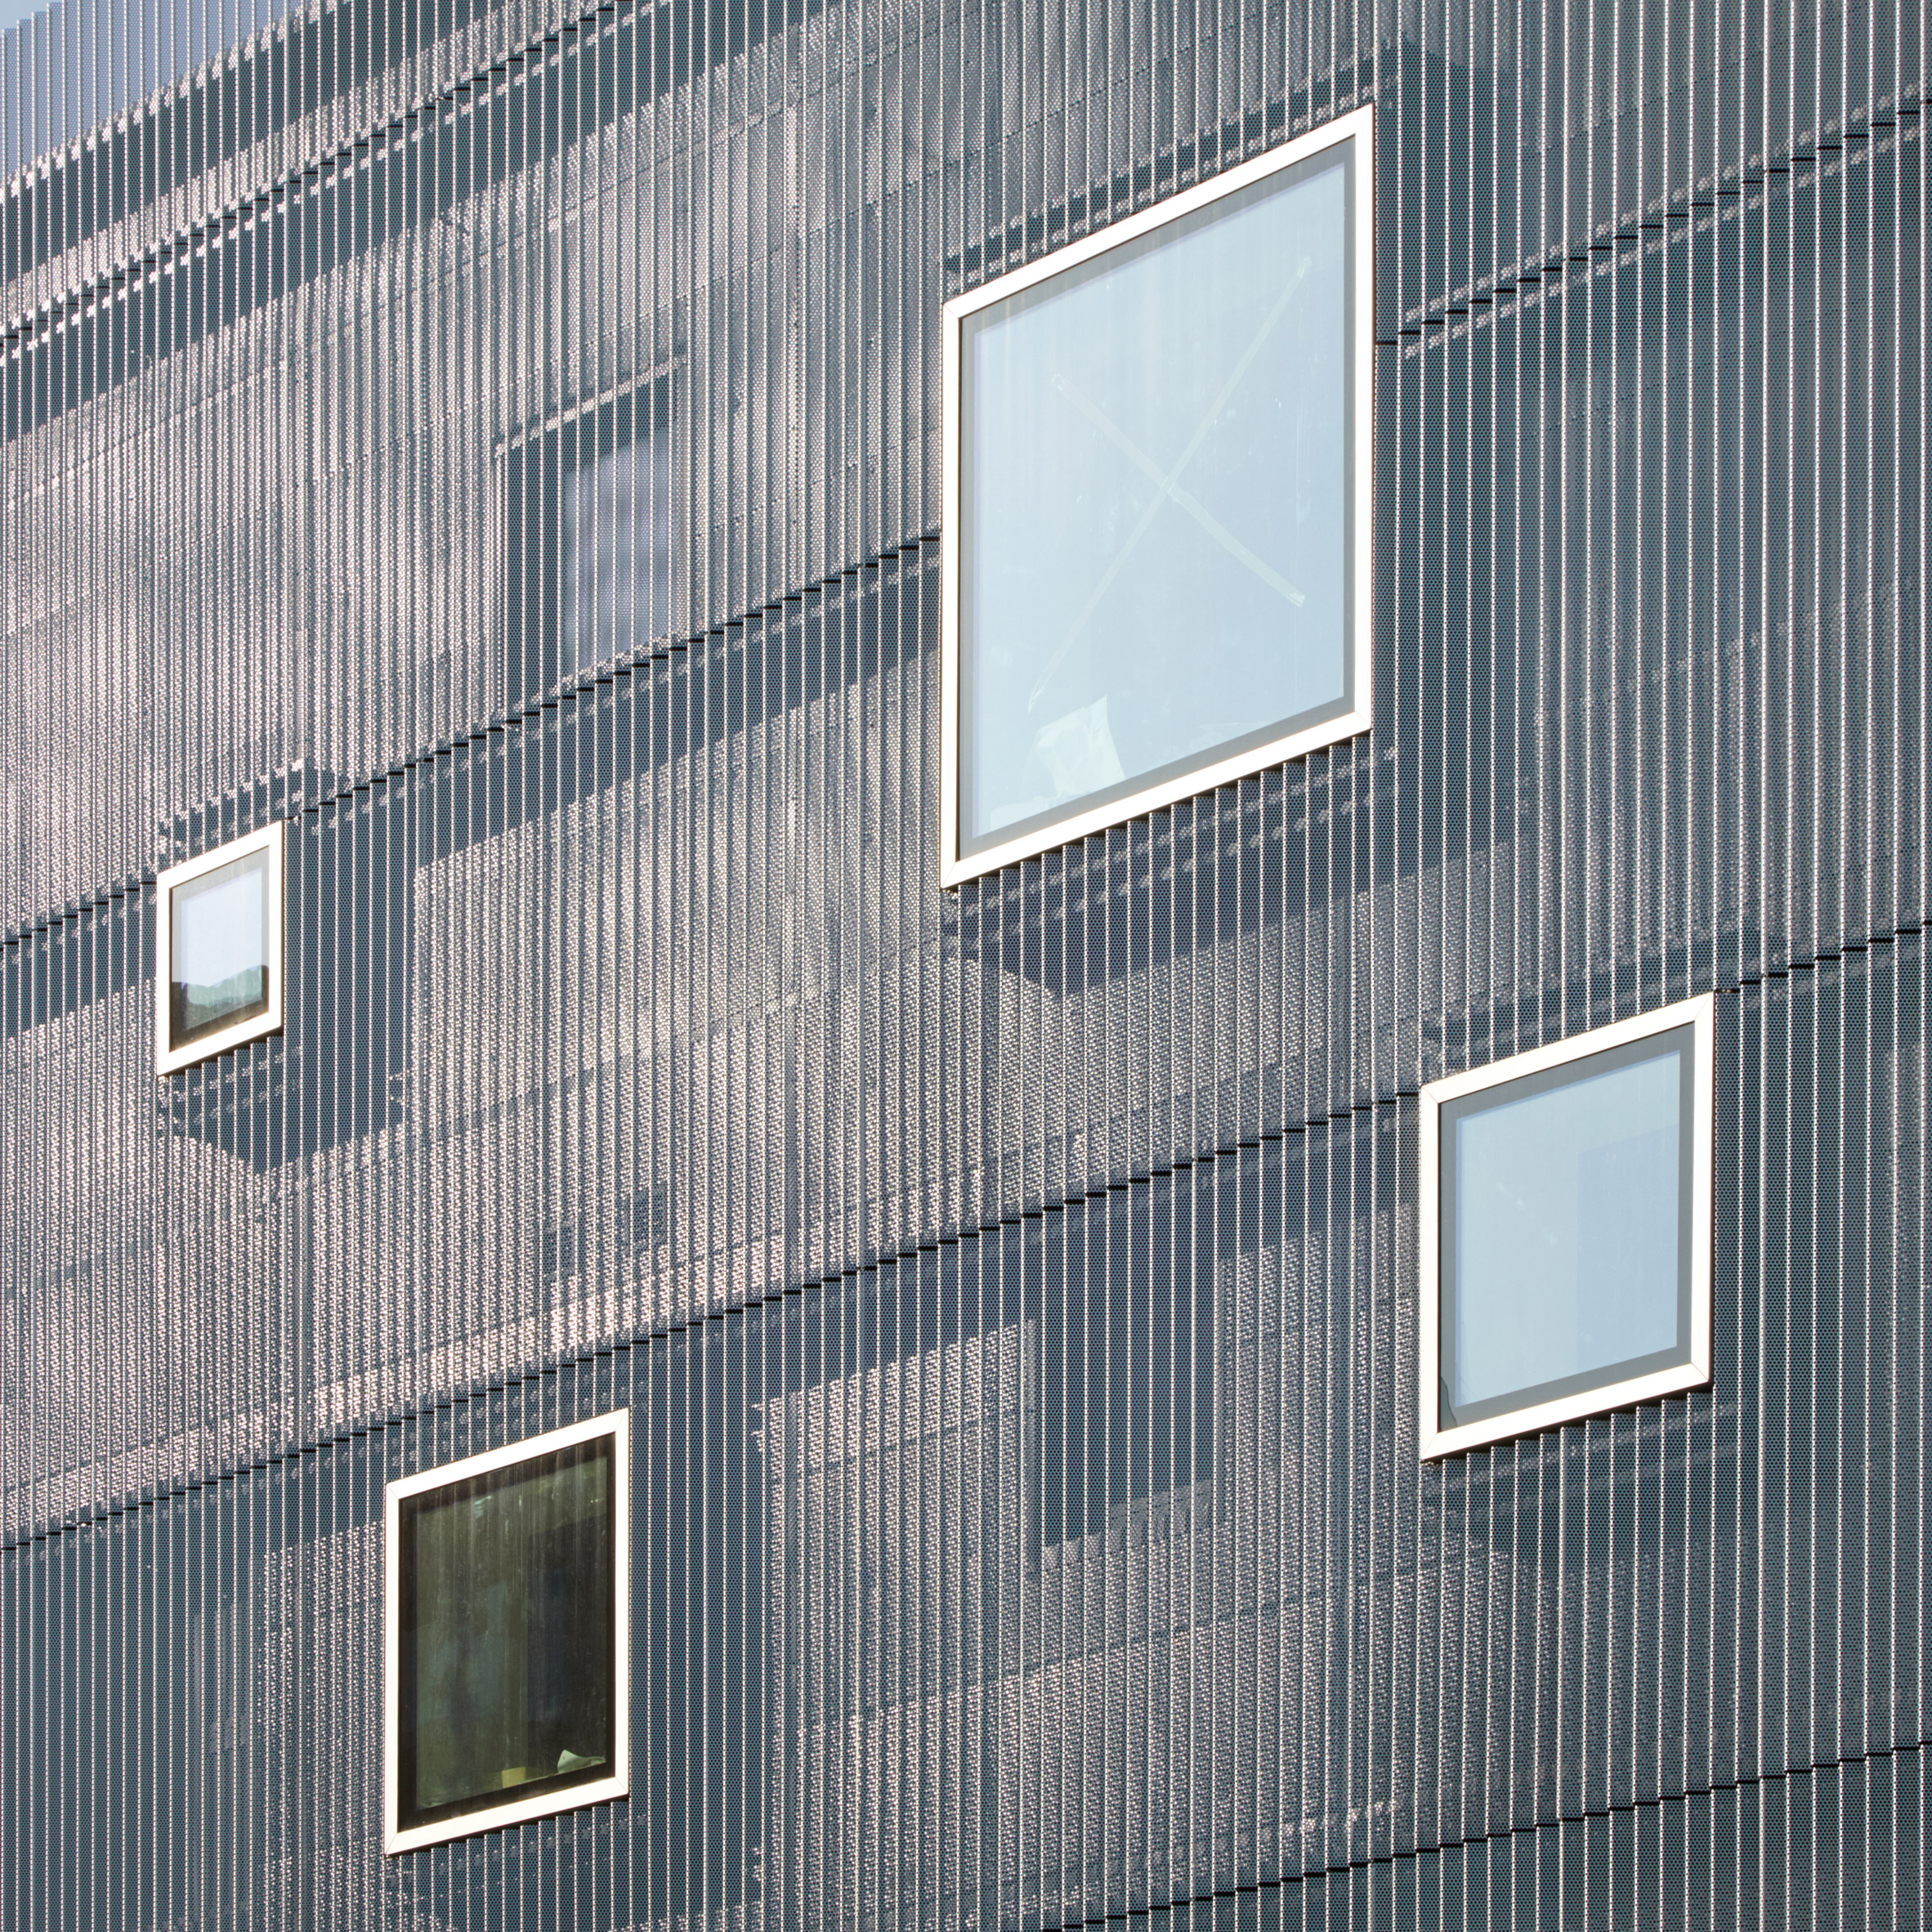 Windows in aluminium facade